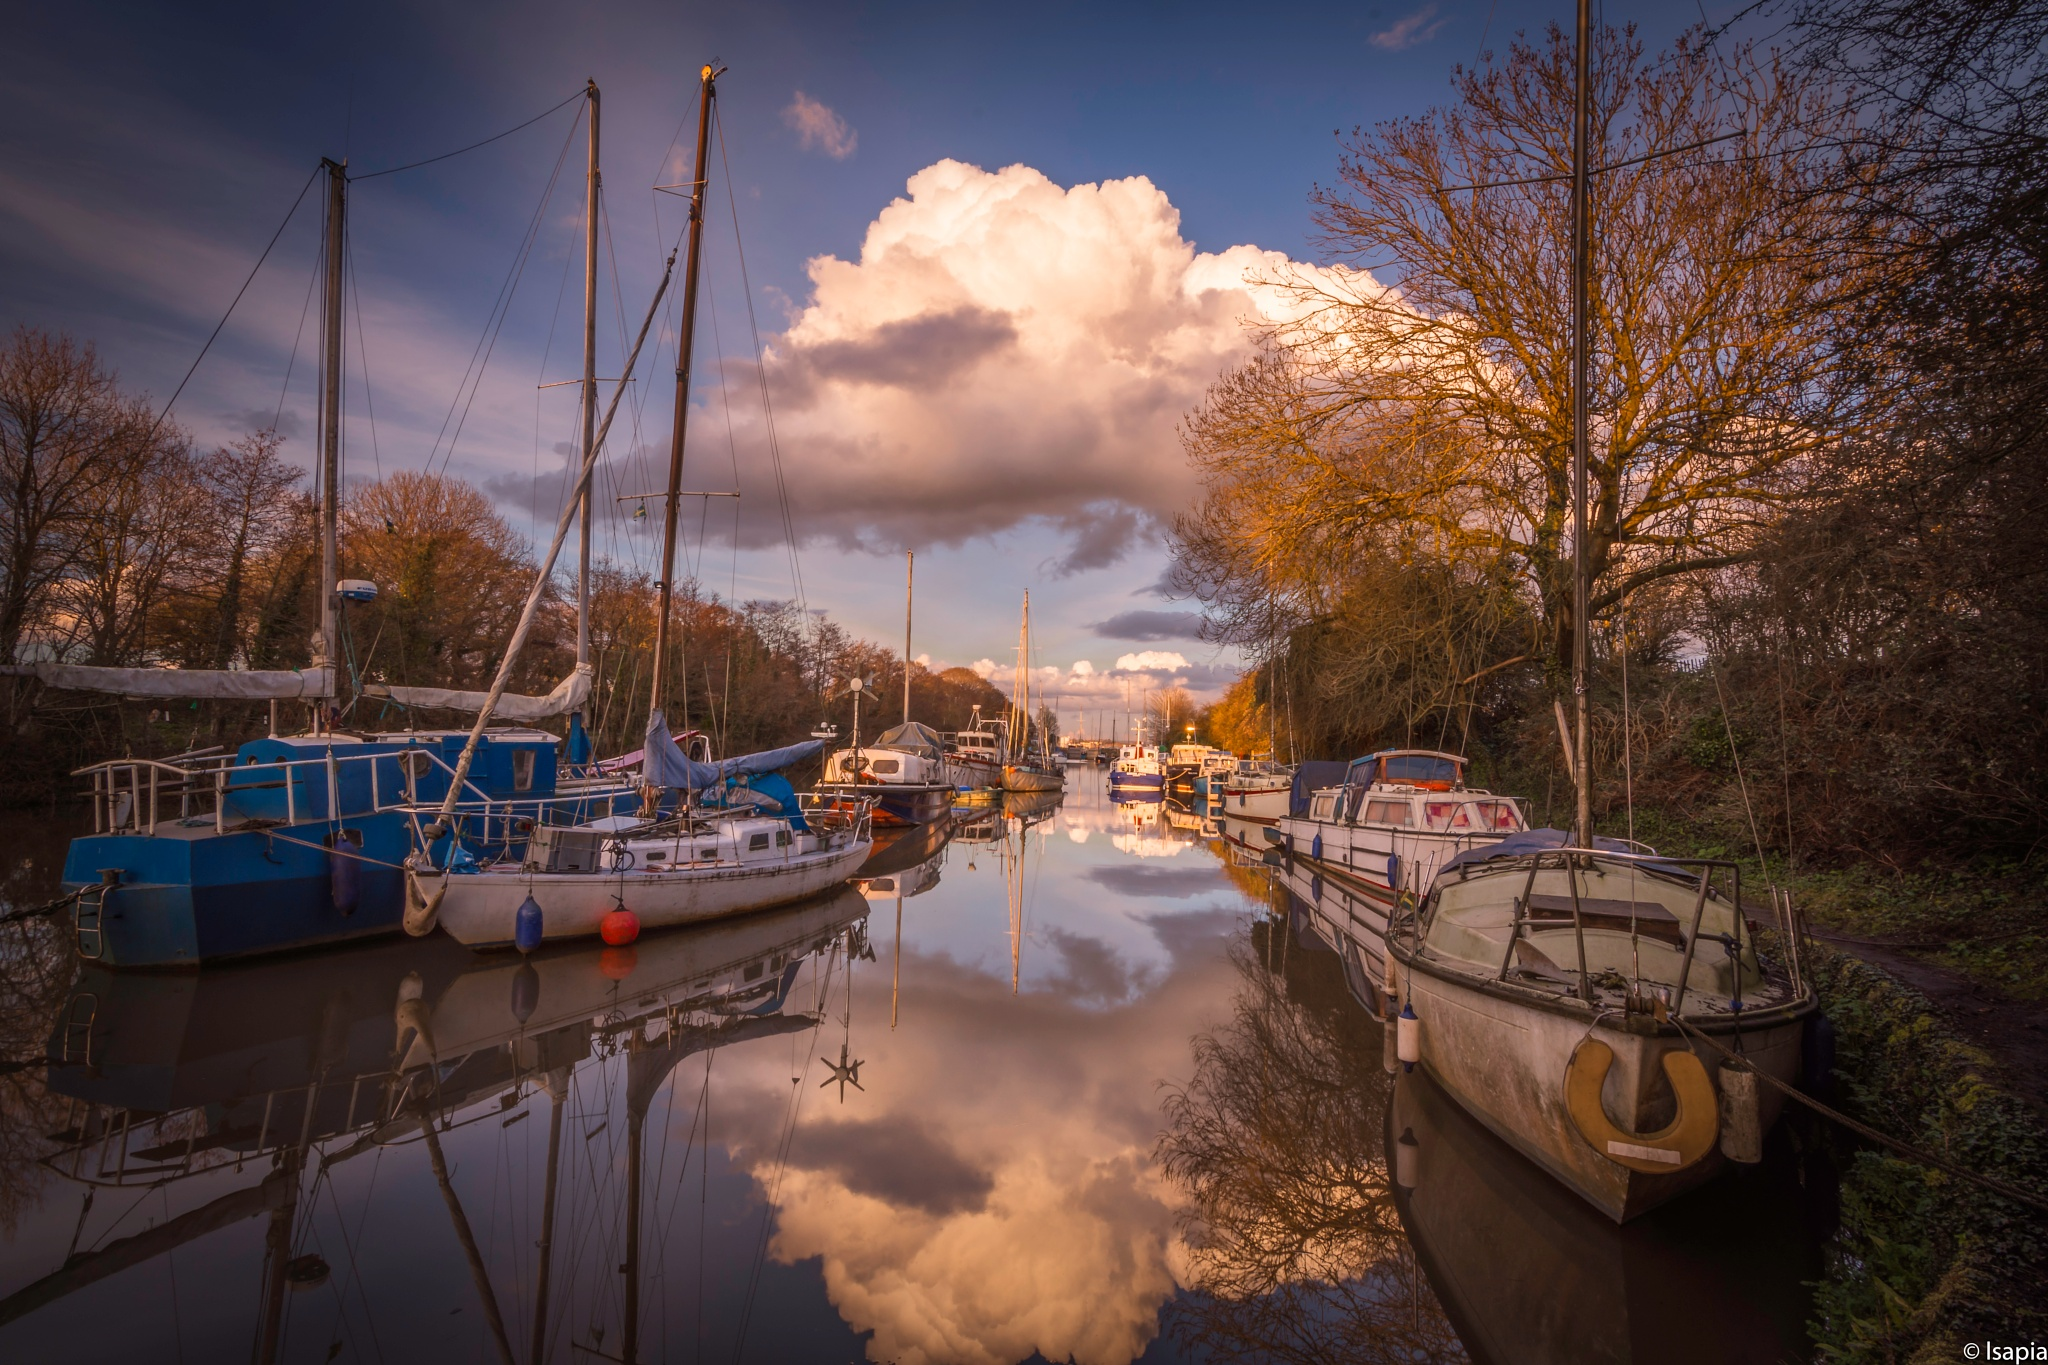 Lydney Harbour Reflections by luigi sapia